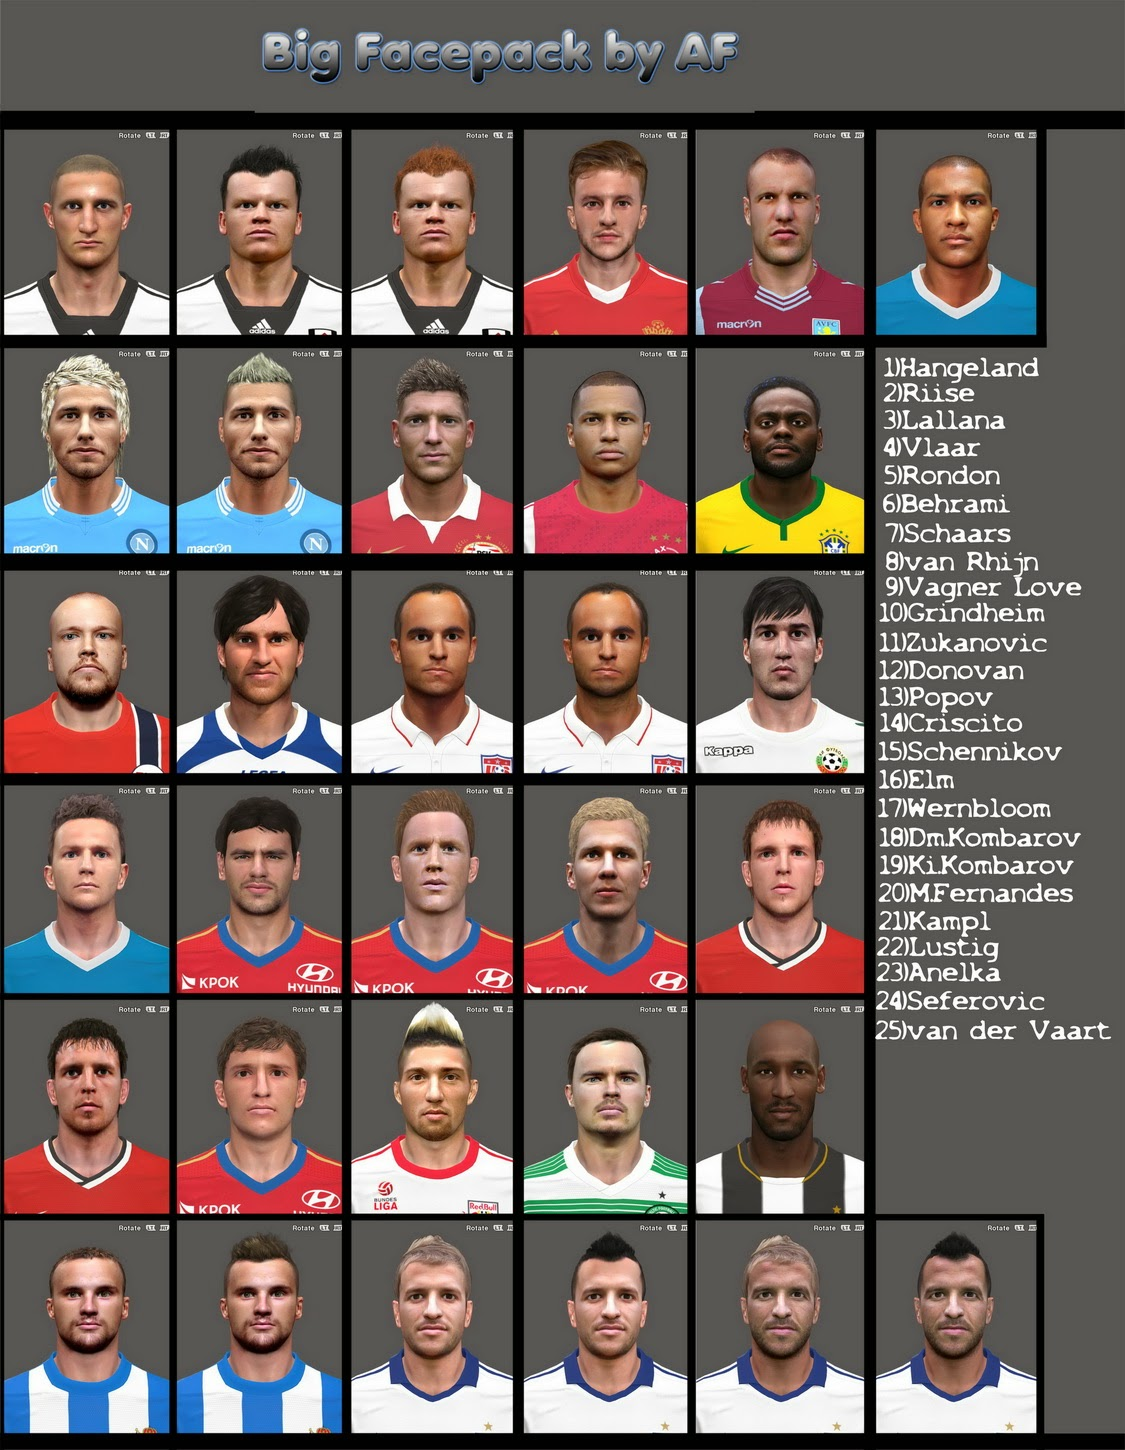 PES 2014 Big Facepack by AF